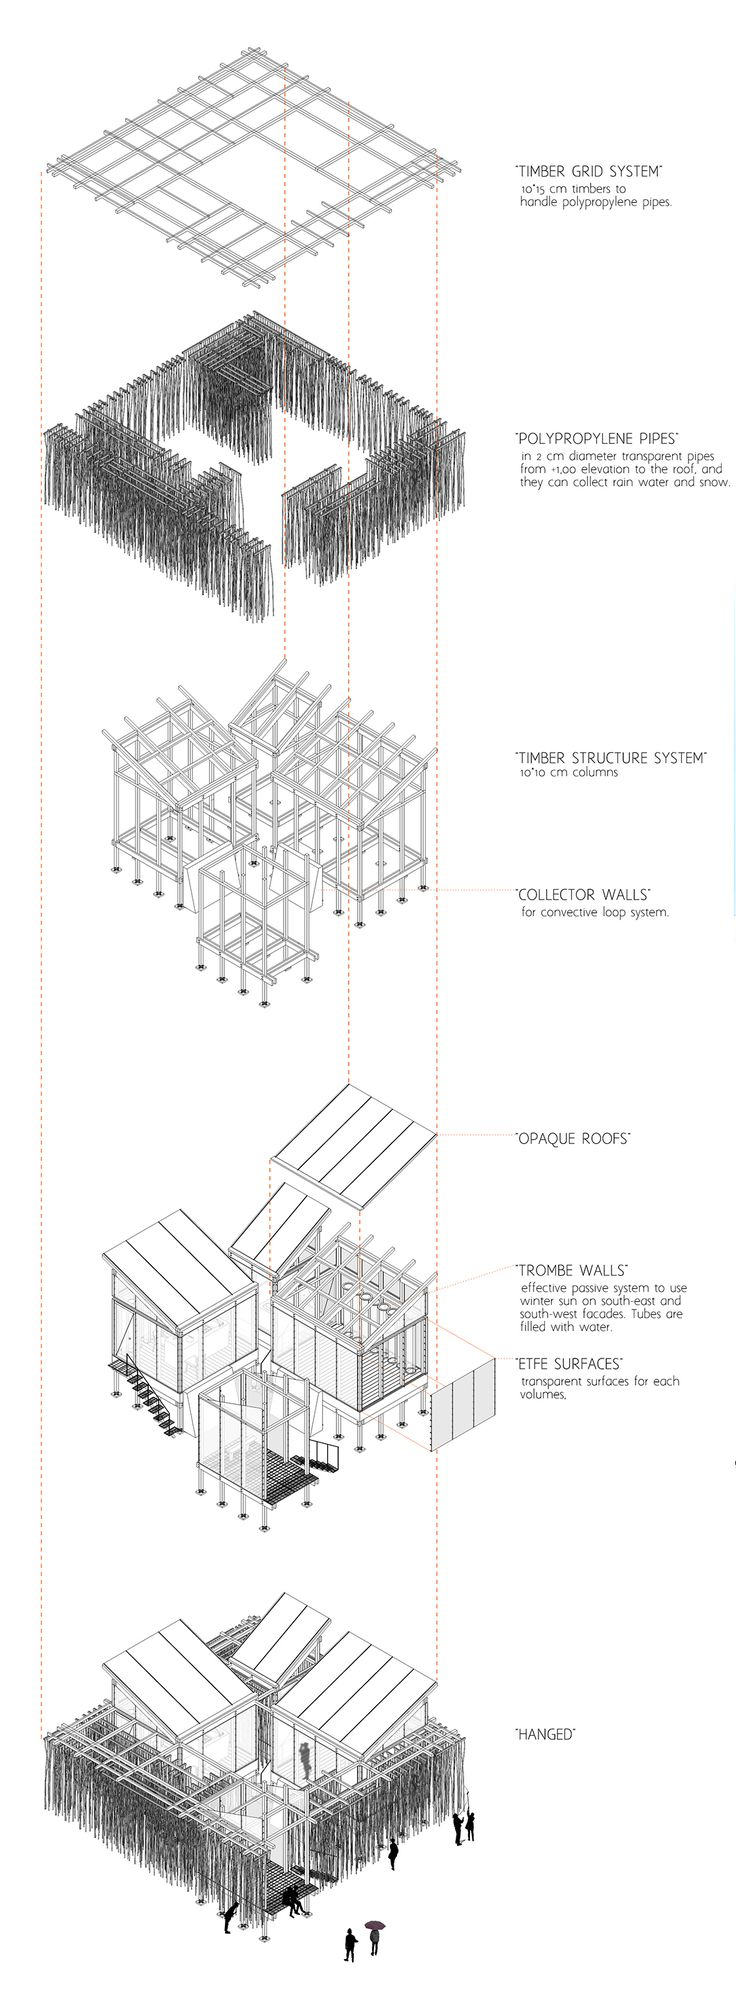 Hanged   House for Enjoying the Harsh Cold / Isometric Diagram by Gumwörk   2015